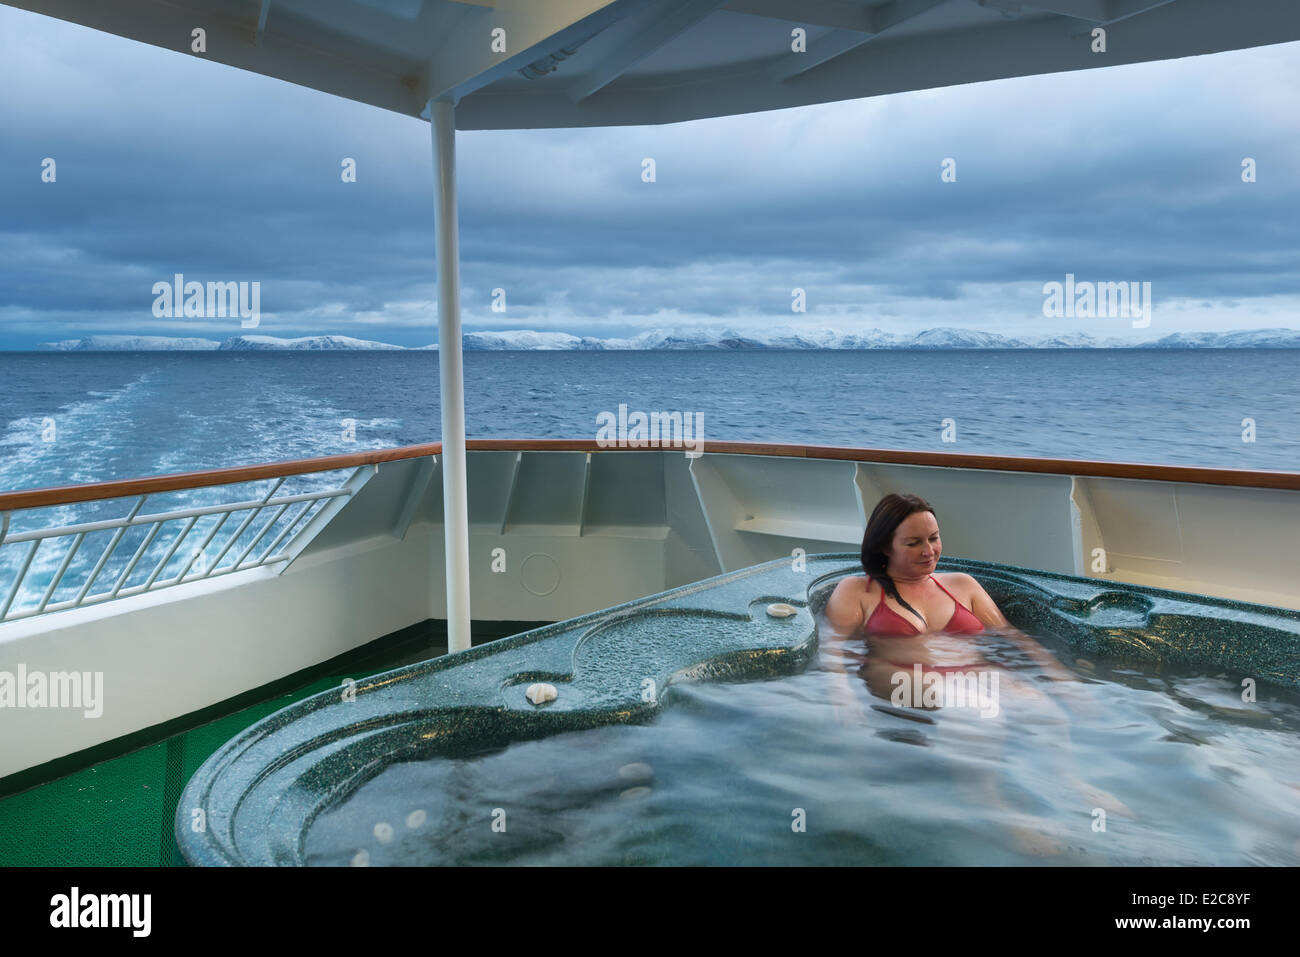 Norway, Finnmark, Hammerfest, tourist in the jacuzzi of the ship ...